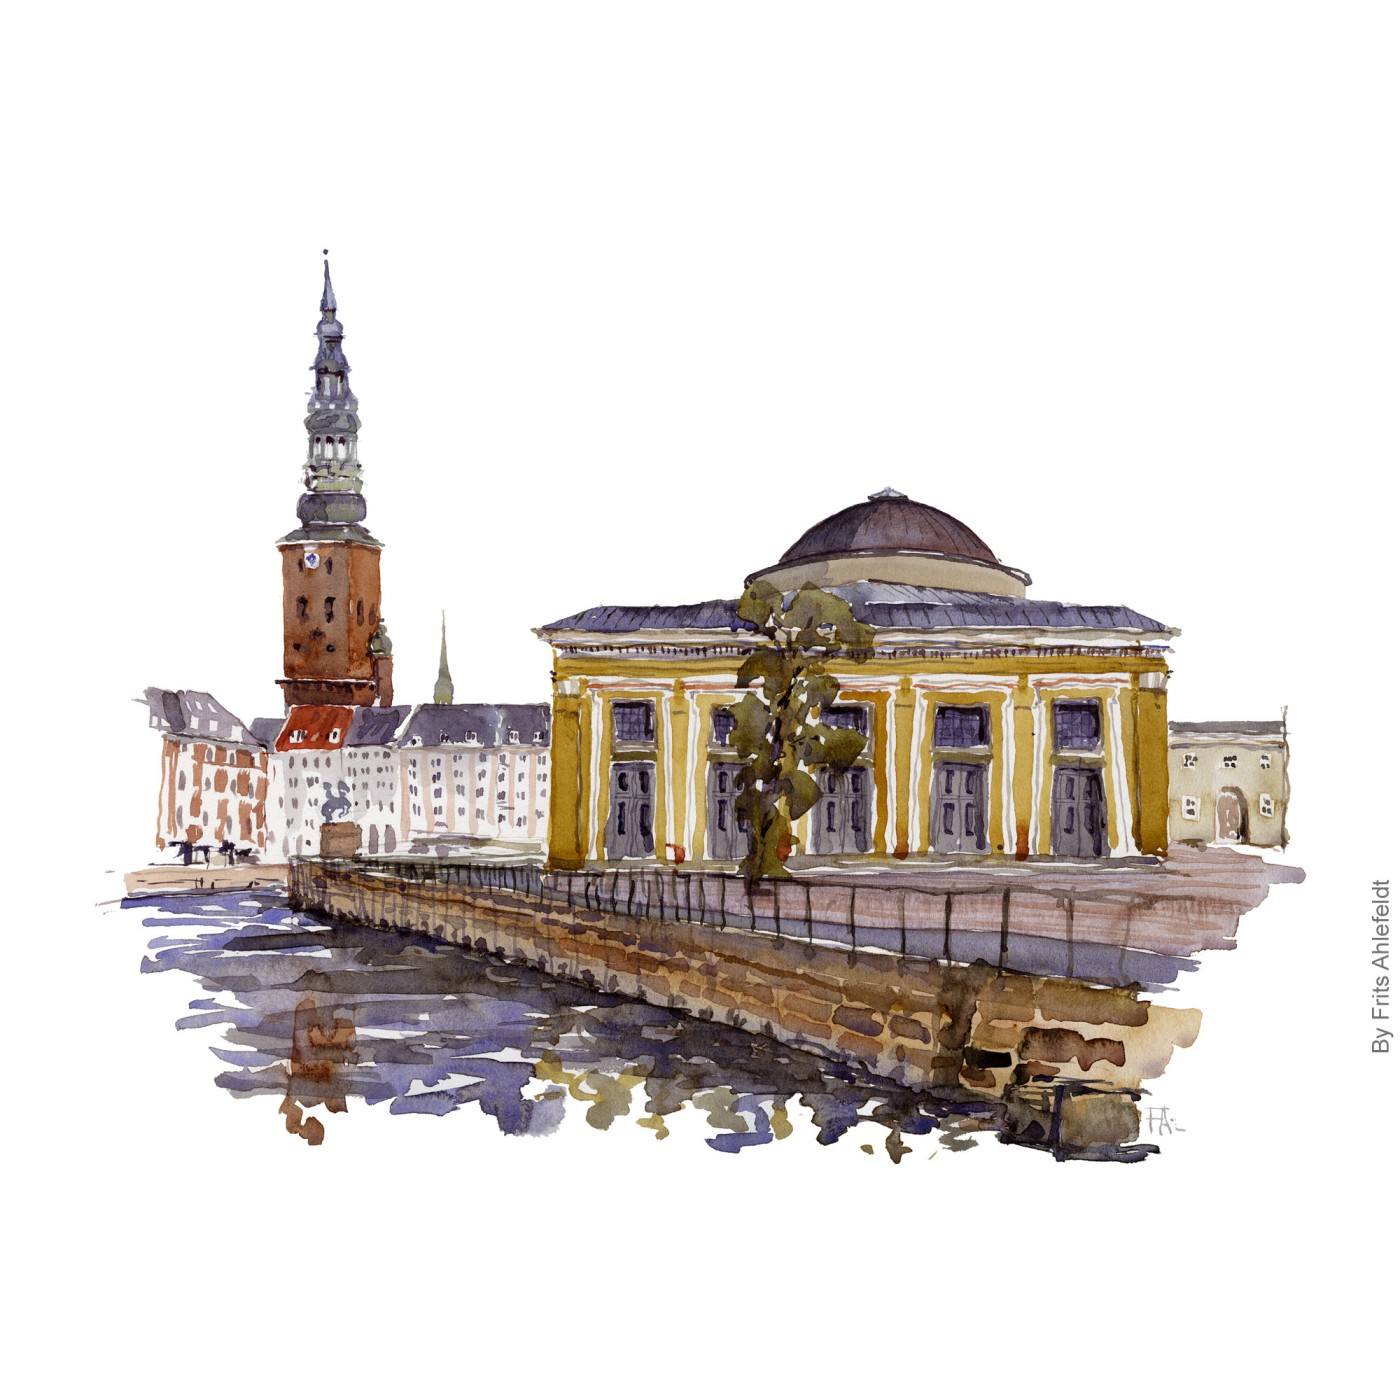 Watercolor painting of the Thorvaldsens Museum, Copenhagen, Denmark. Painting by Frits Ahlefeldt